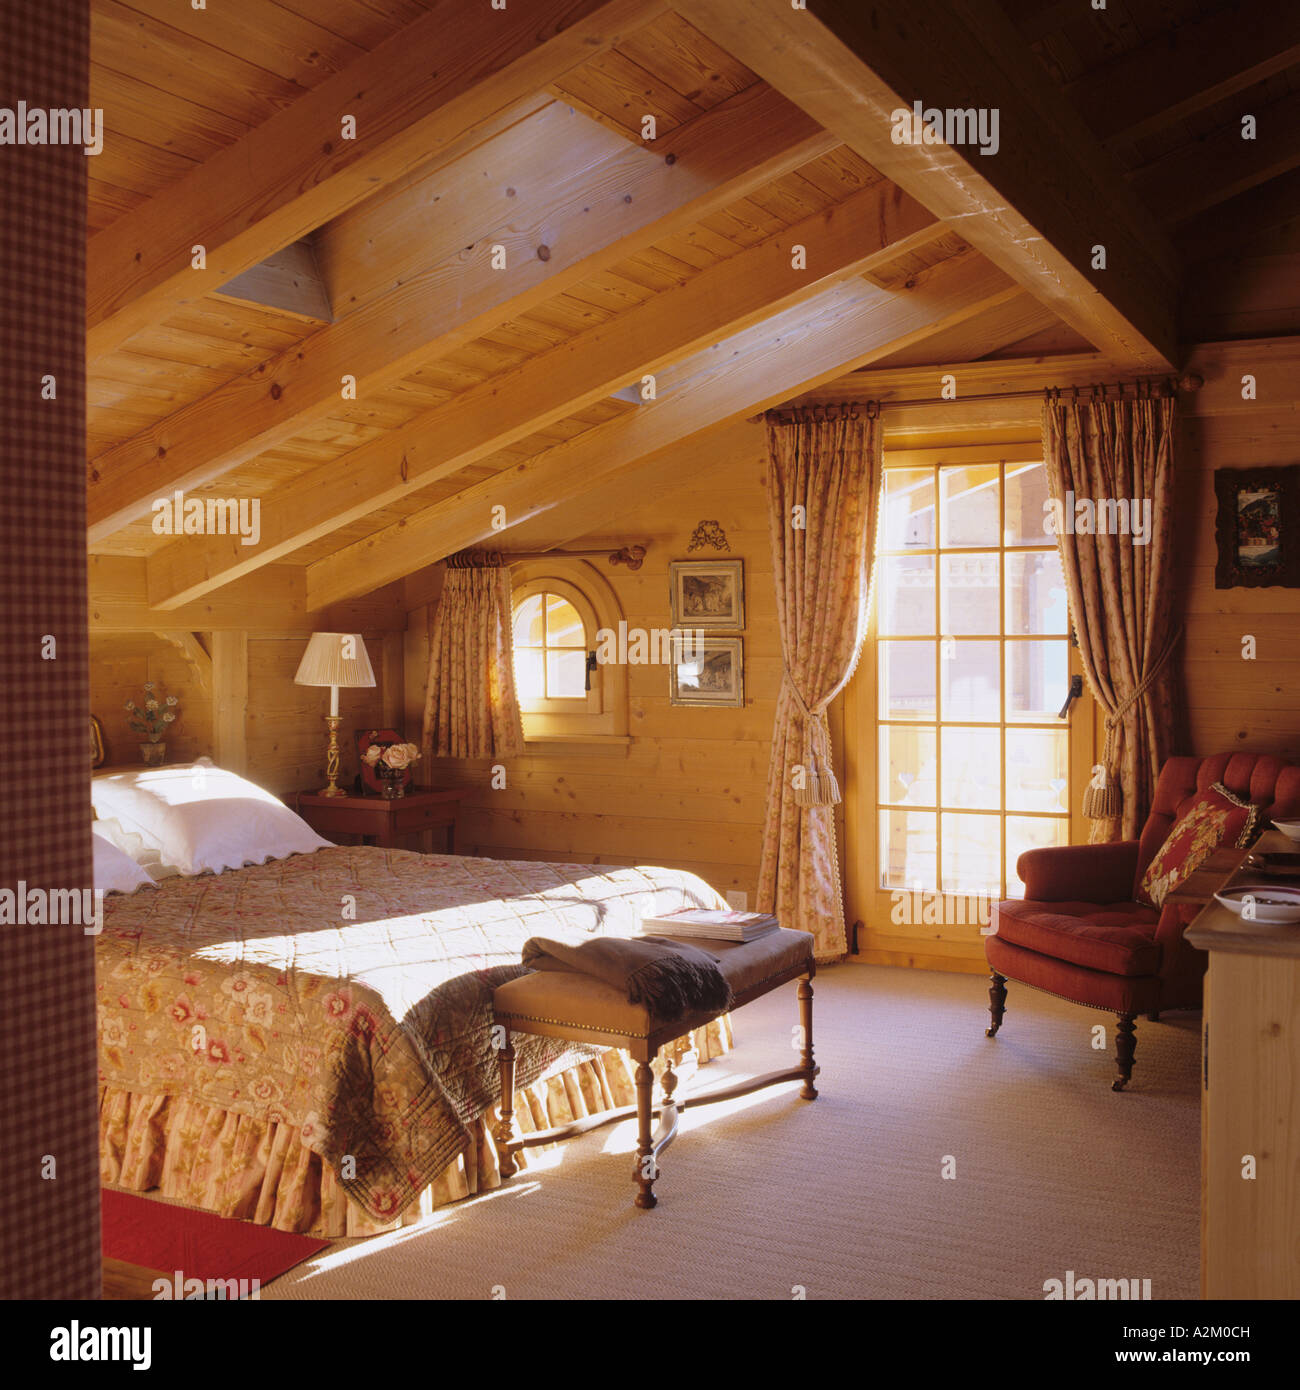 Bedroom Skylight A Bedroom With Skylight Window In A Traditional Chalet In